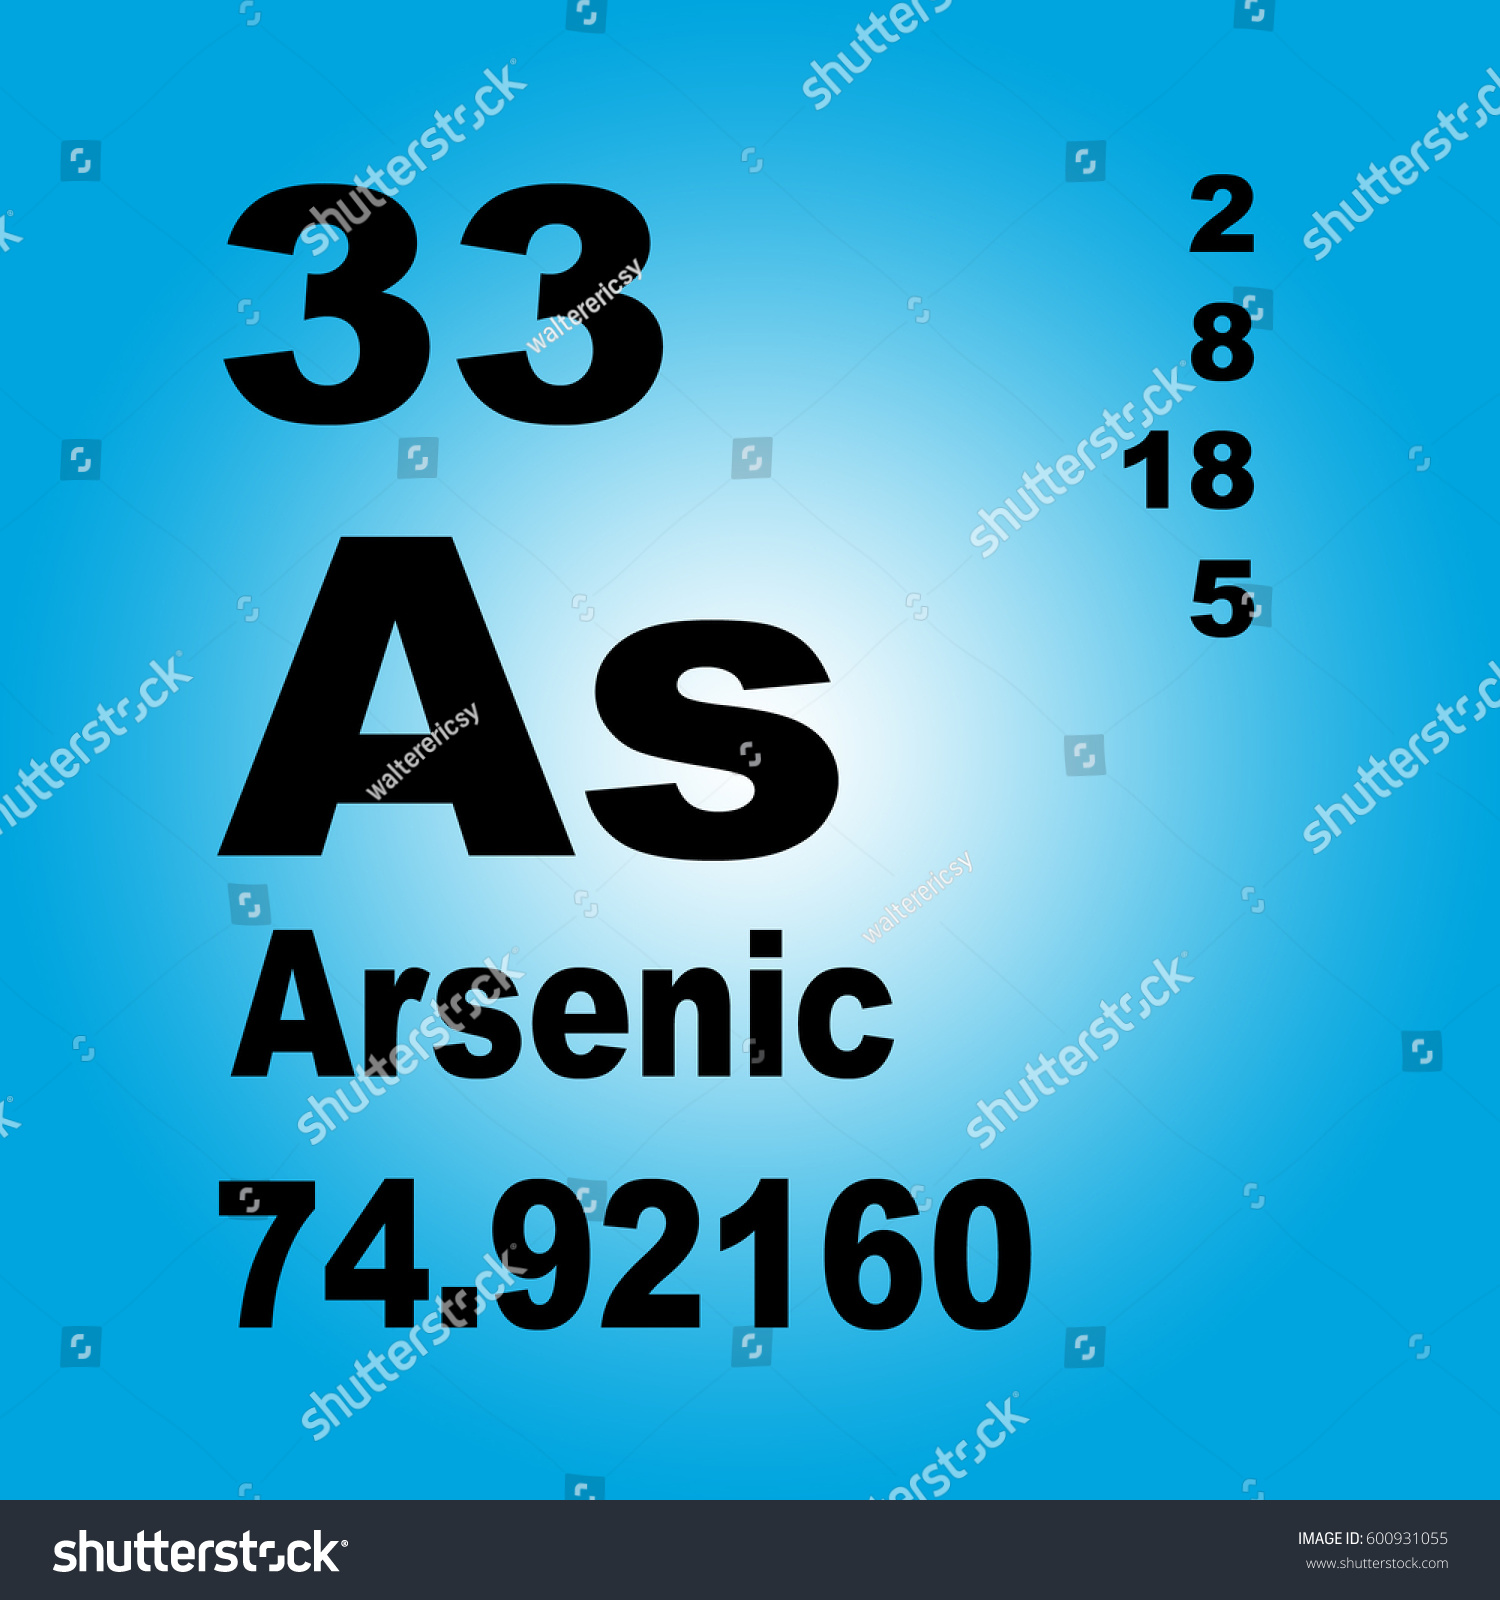 Arsenic periodic table elements stock illustration 600931055 arsenic periodic table of elements biocorpaavc Image collections